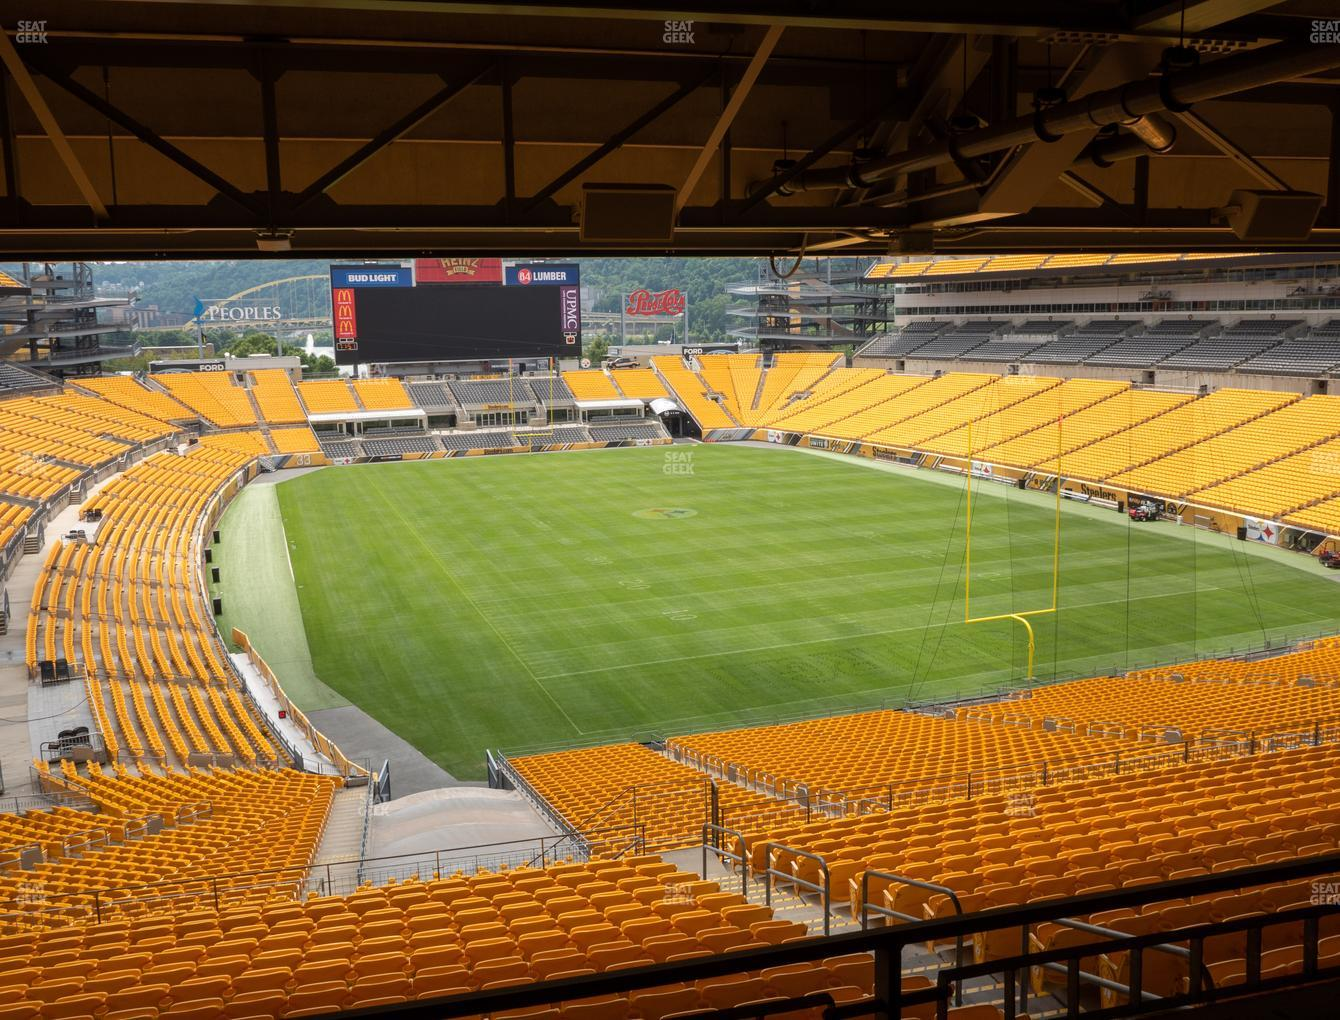 Pittsburgh Steelers at Heinz Field North Club 005 View